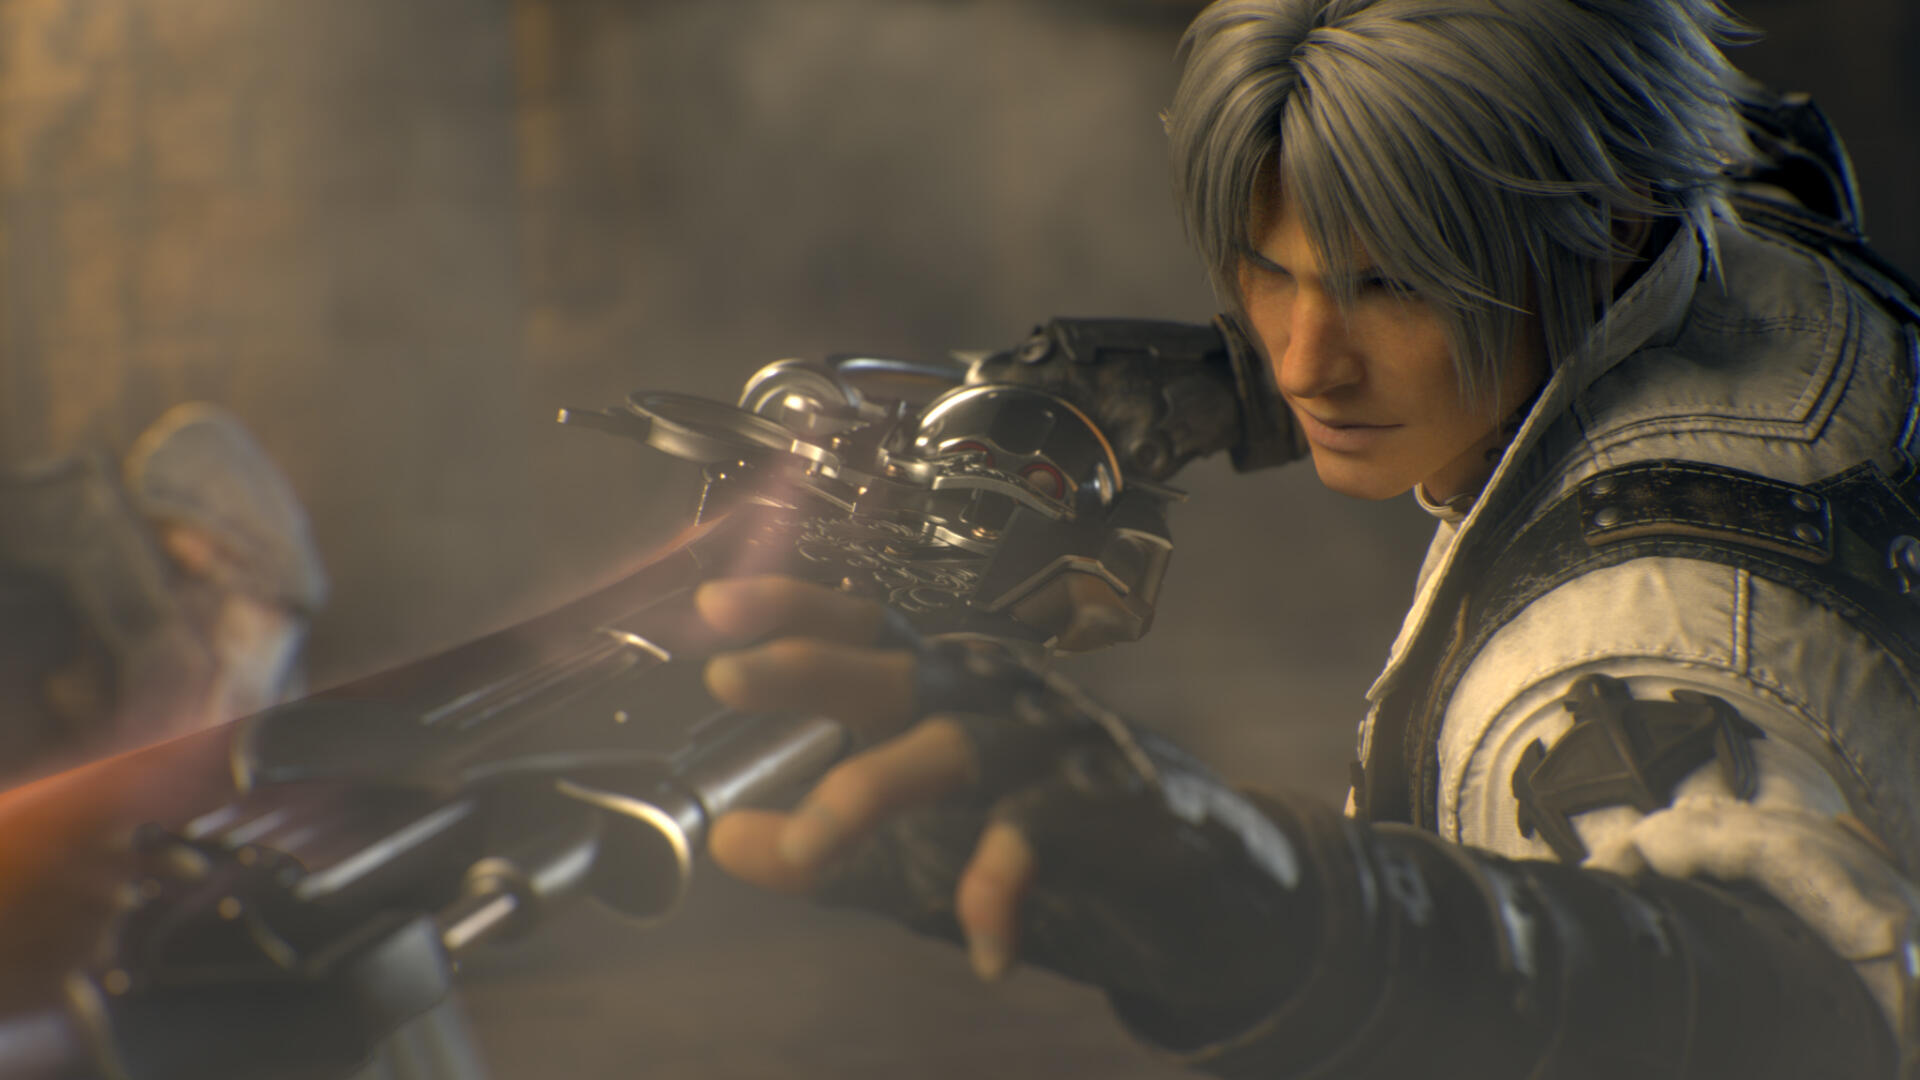 Final Fantasy 14 Director Developing a New Key, Next-Gen Game for Square Enix